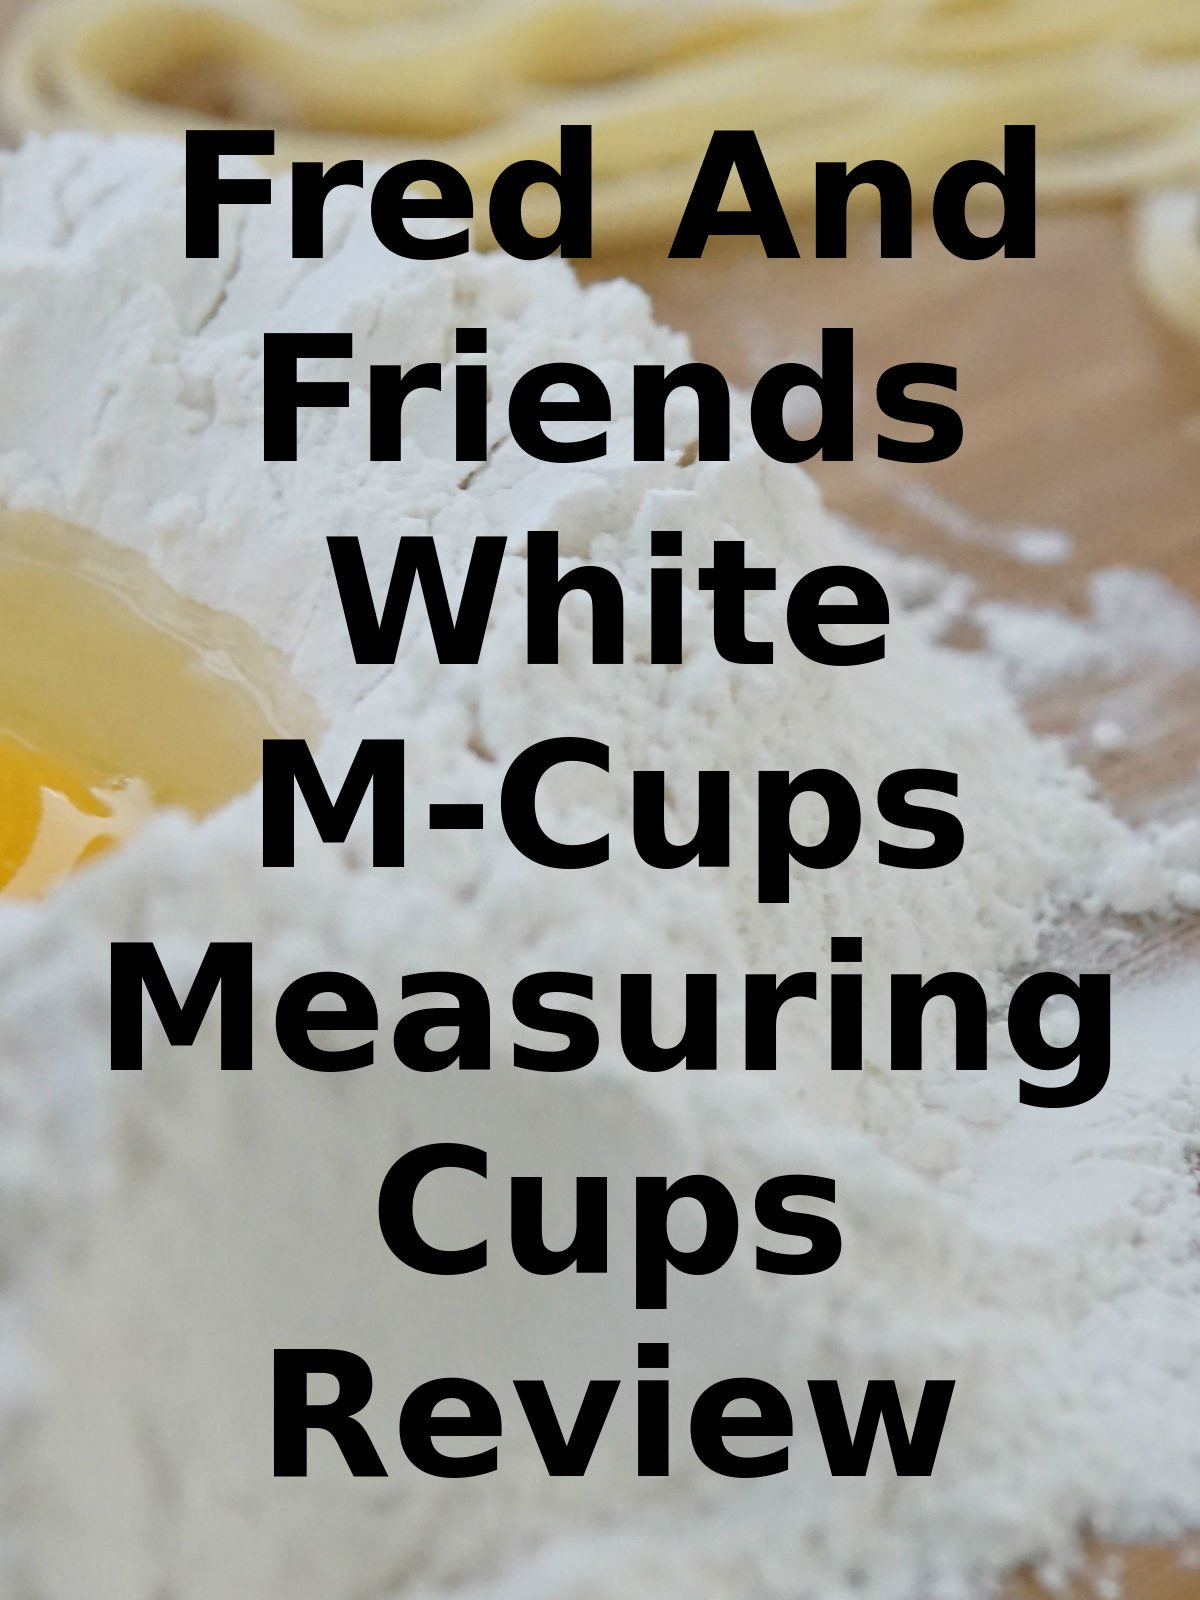 Review: Fred And Friends White M-Cups Measuring Cups Review on Amazon Prime Video UK